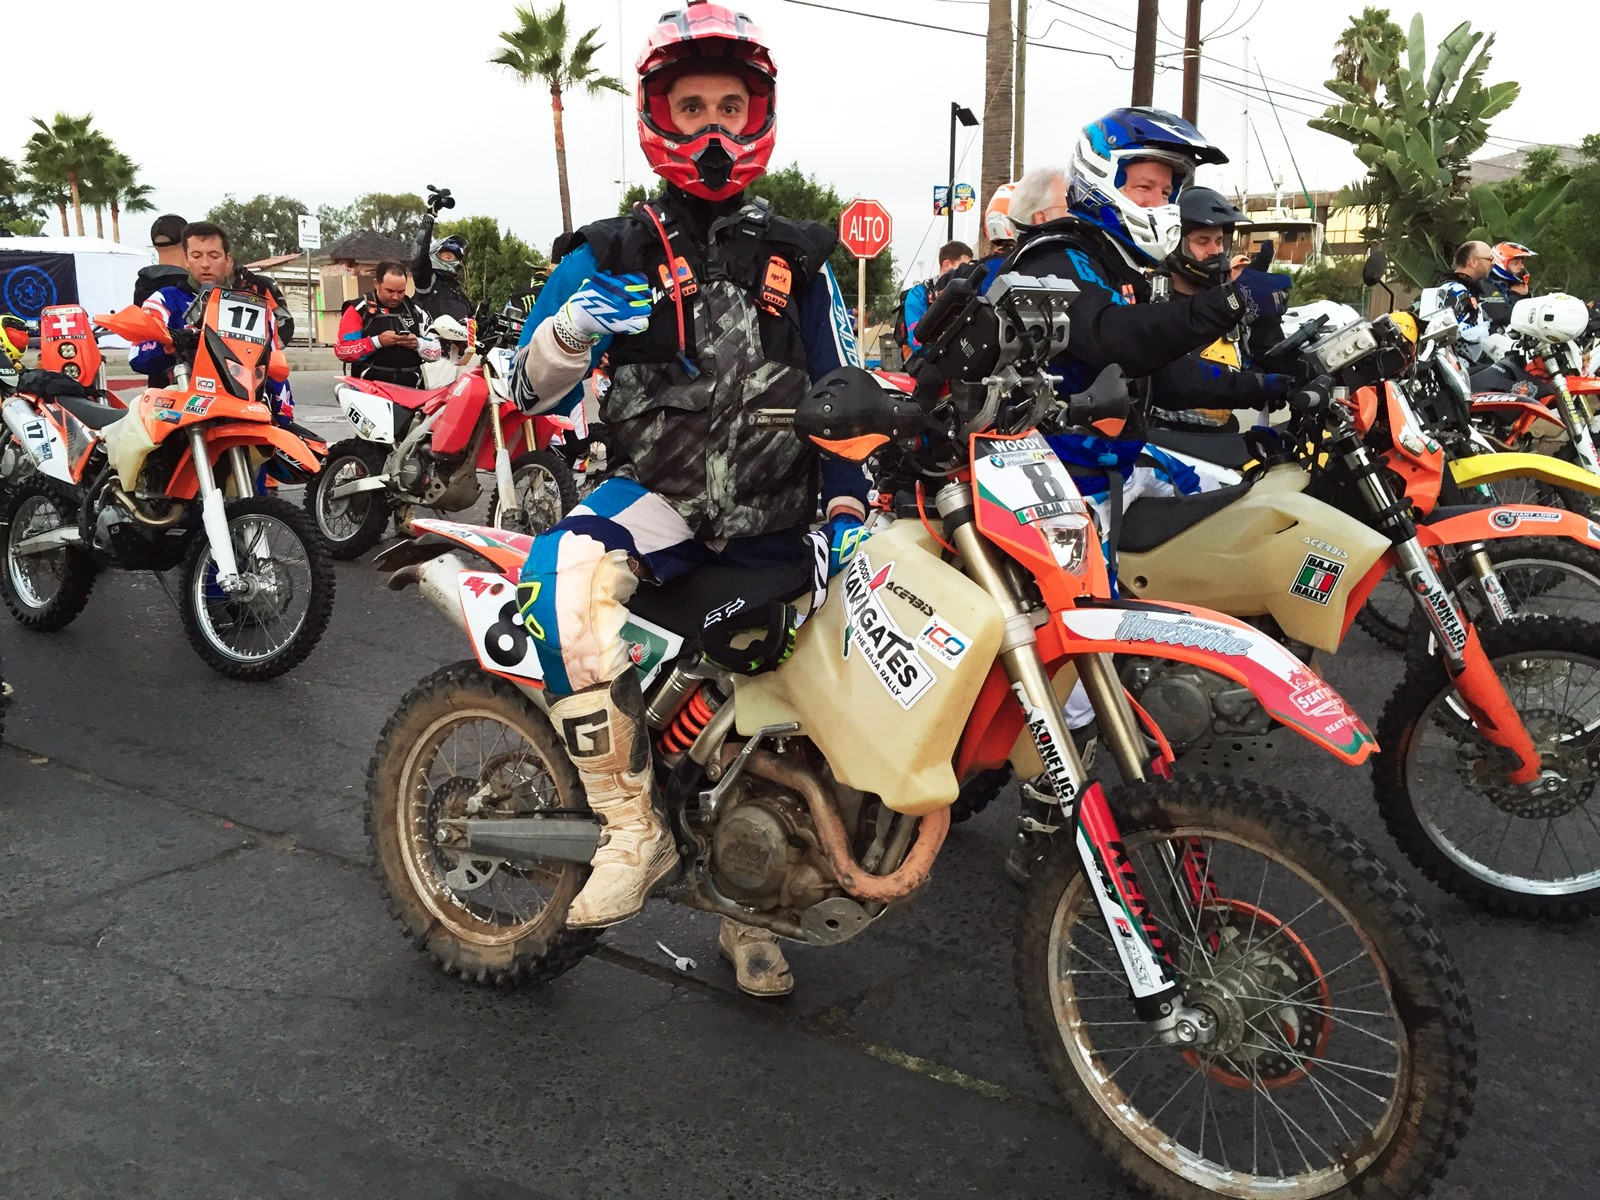 Start of the 2014 Baja Rally in the City of Ensenada